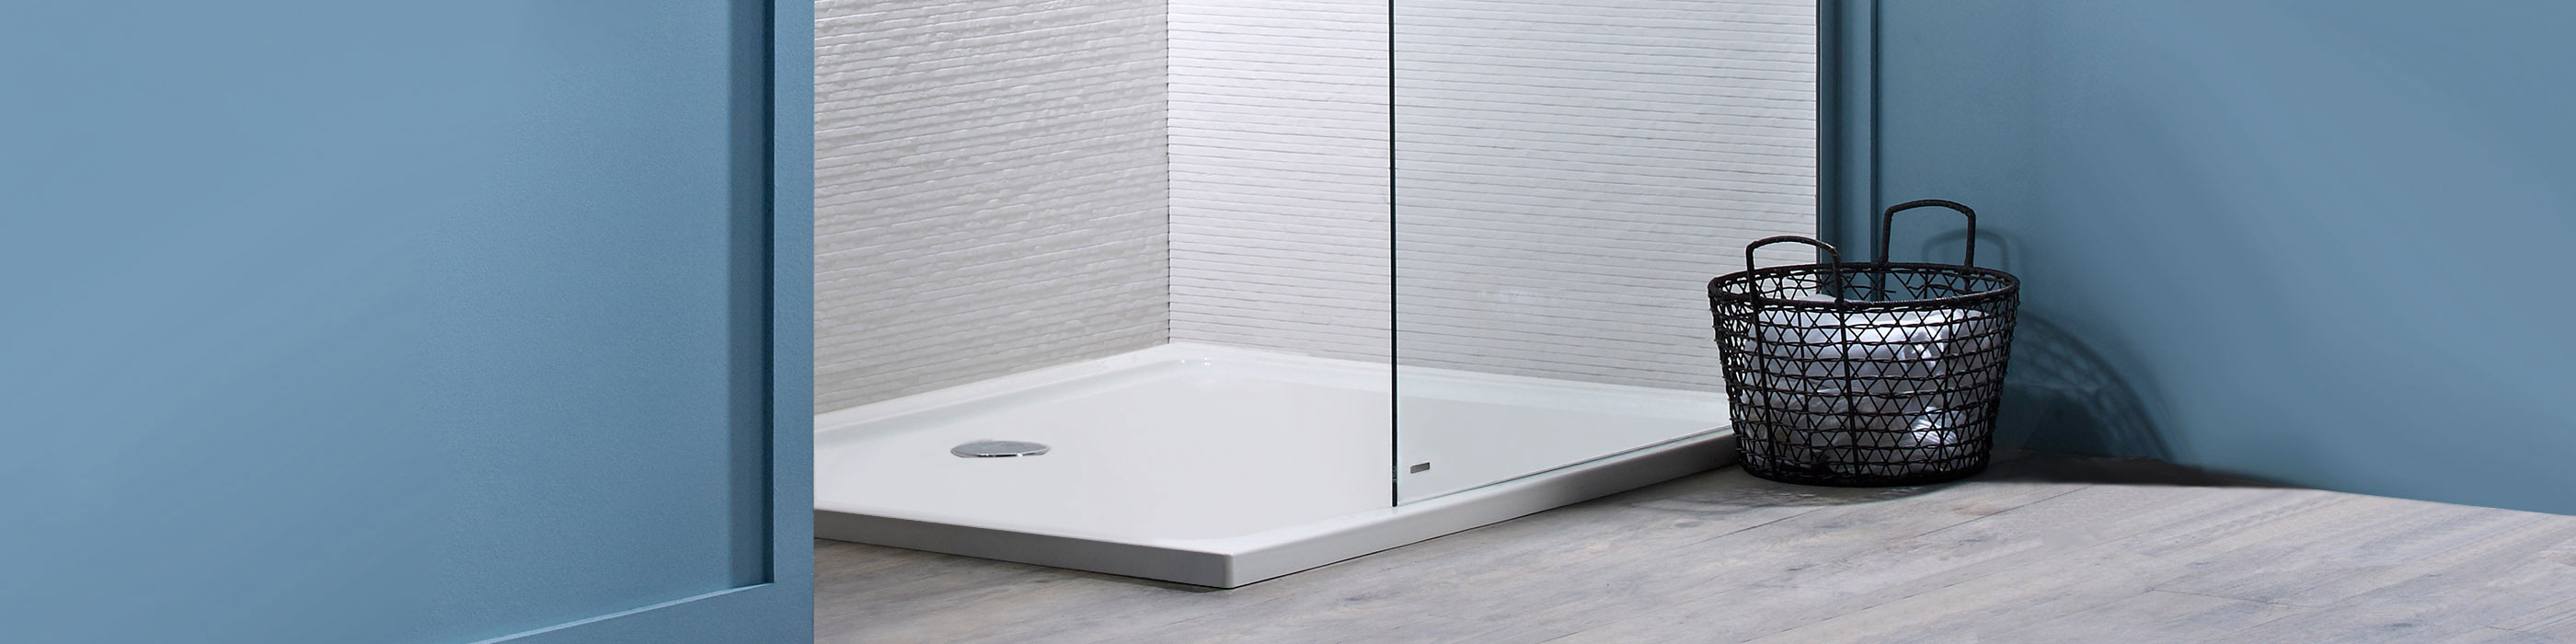 5 Best Shower Pans Reviews Complete Buying Guide 2019